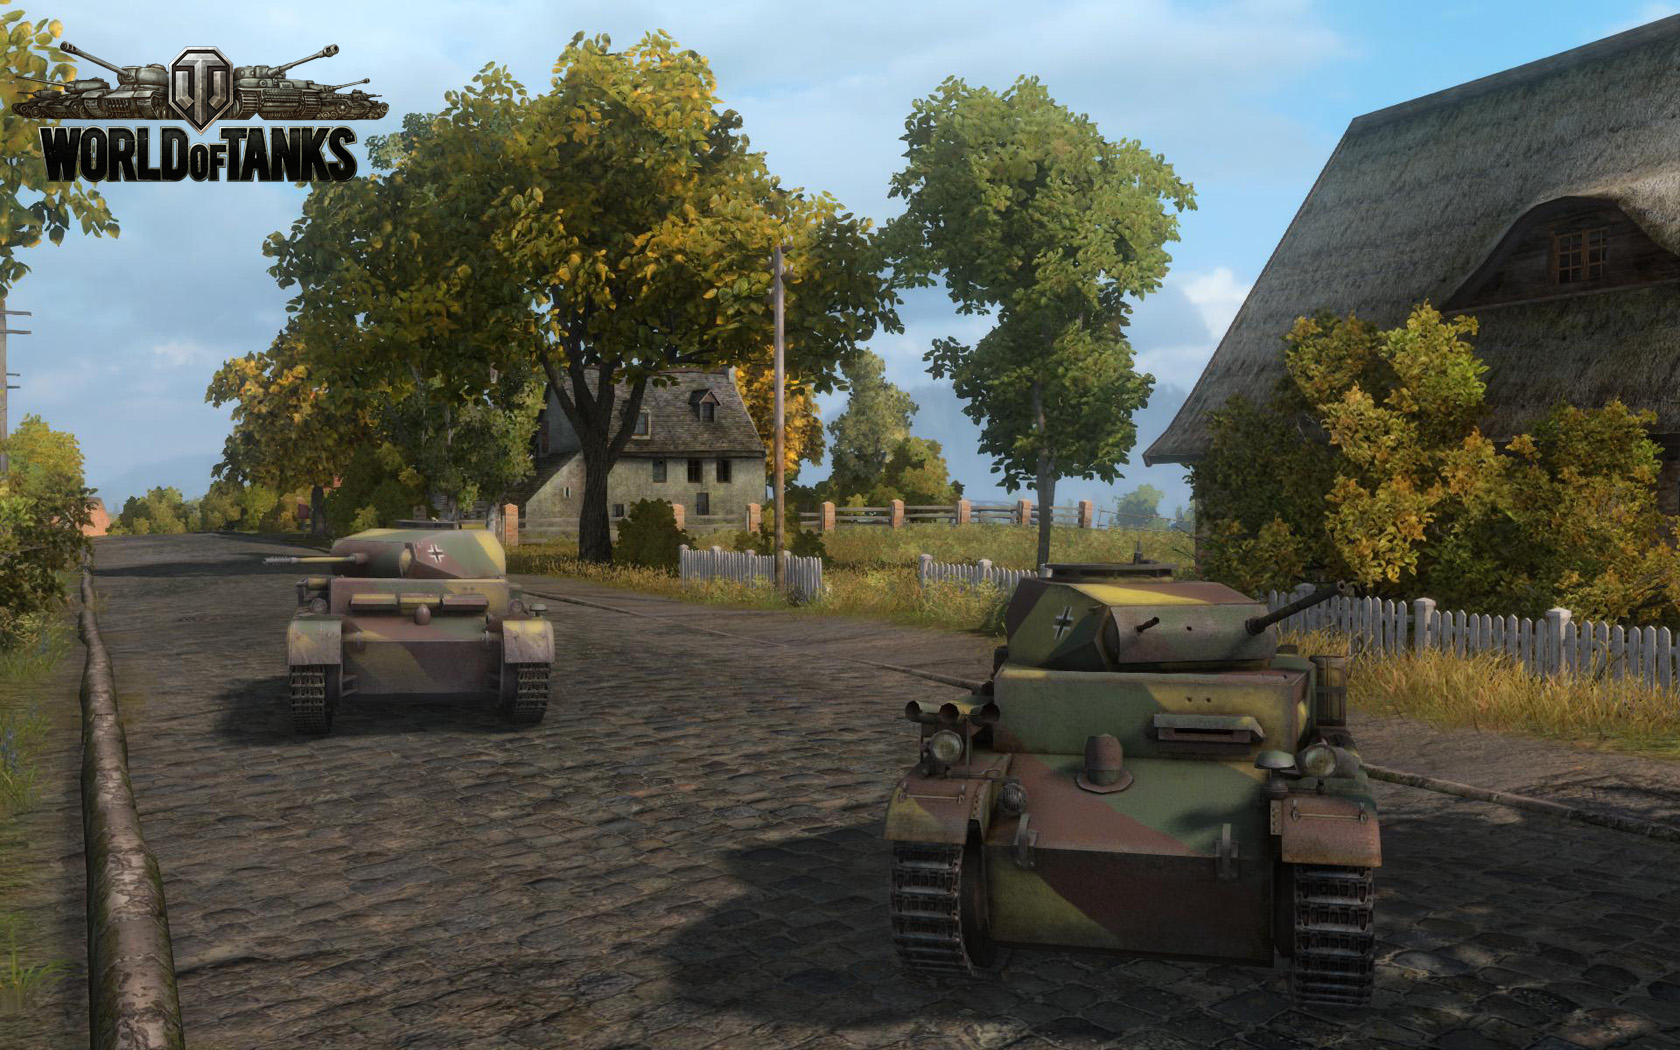 World of Tanks update 8 4 coming to North America, Southeast Asia